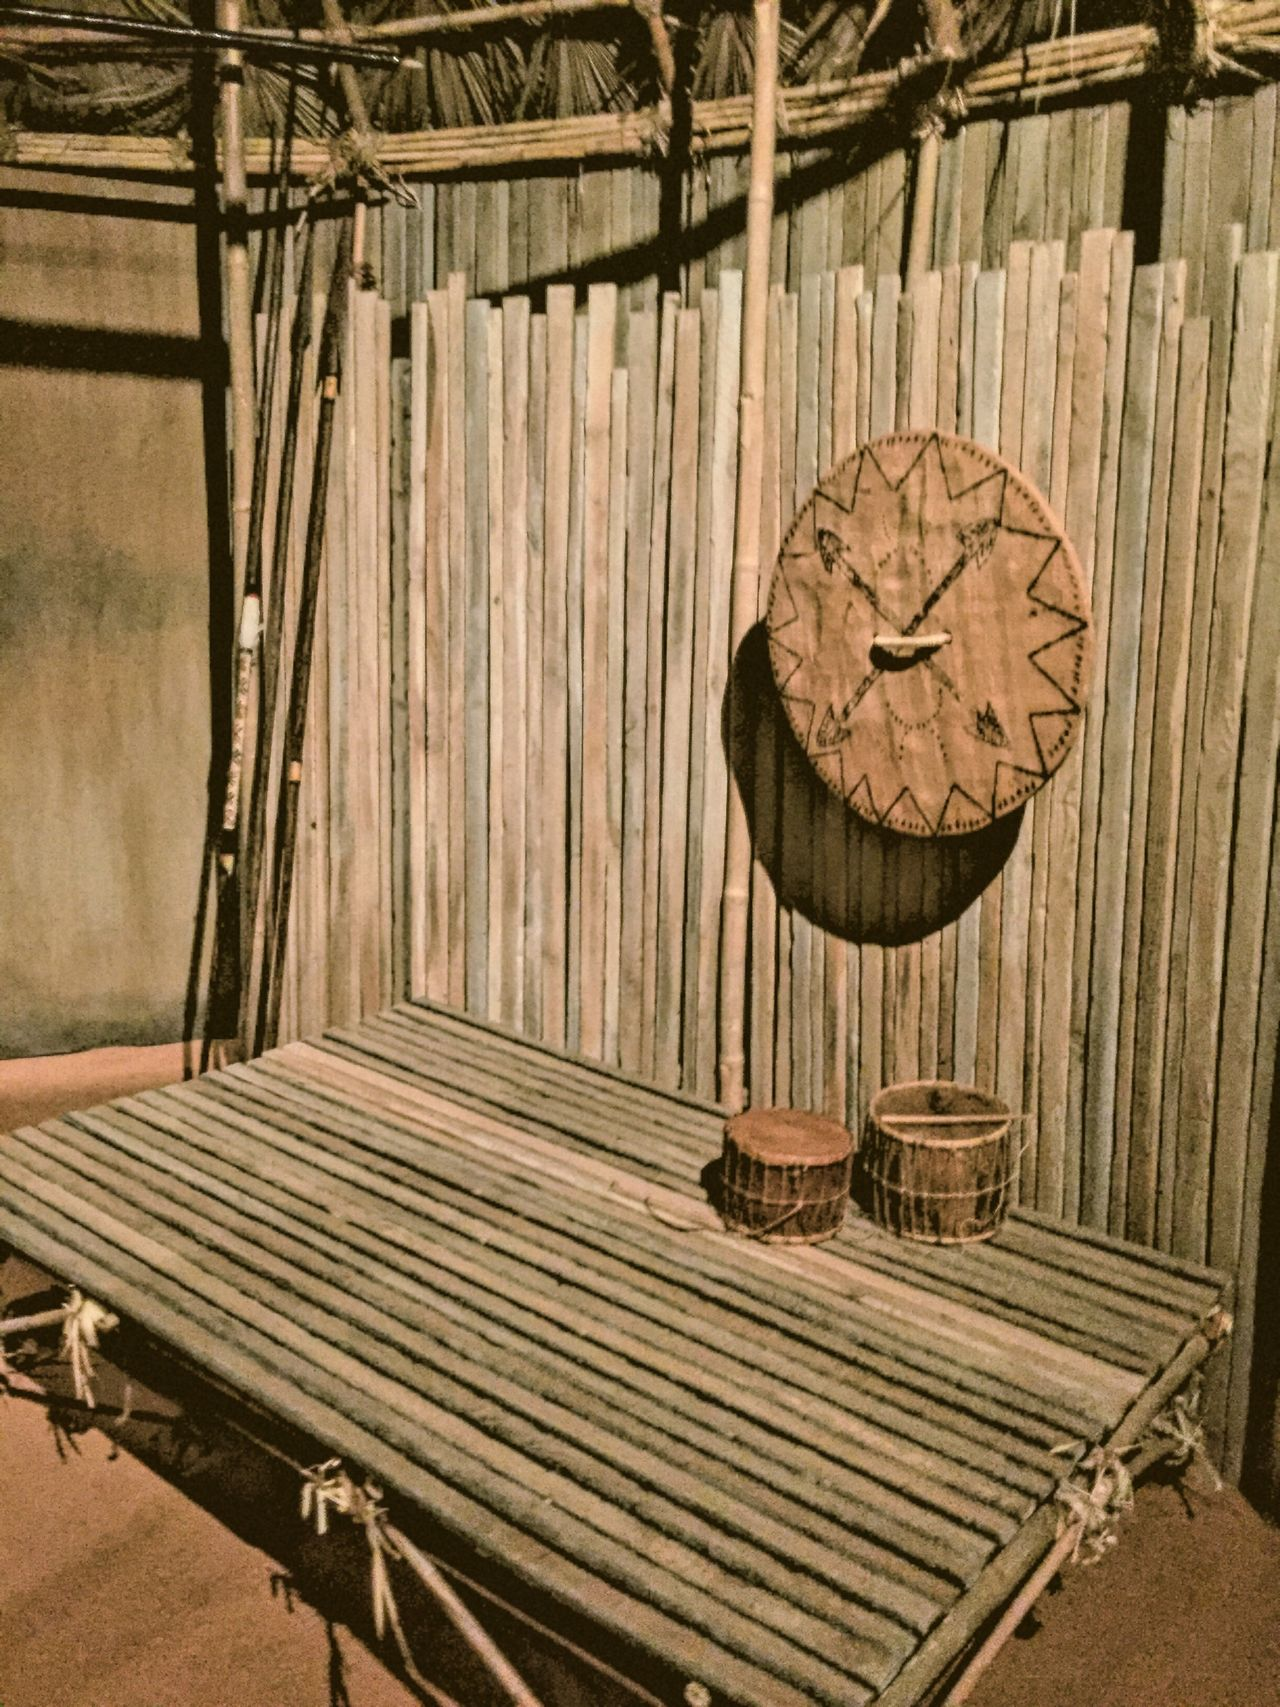 Amazon natives hut model Wood - Material No People Day Old-fashioned Rusty Outdoors Close-up ScienceMuseum EyeEm Best Shots EyeEmNewHere Eyeem Market